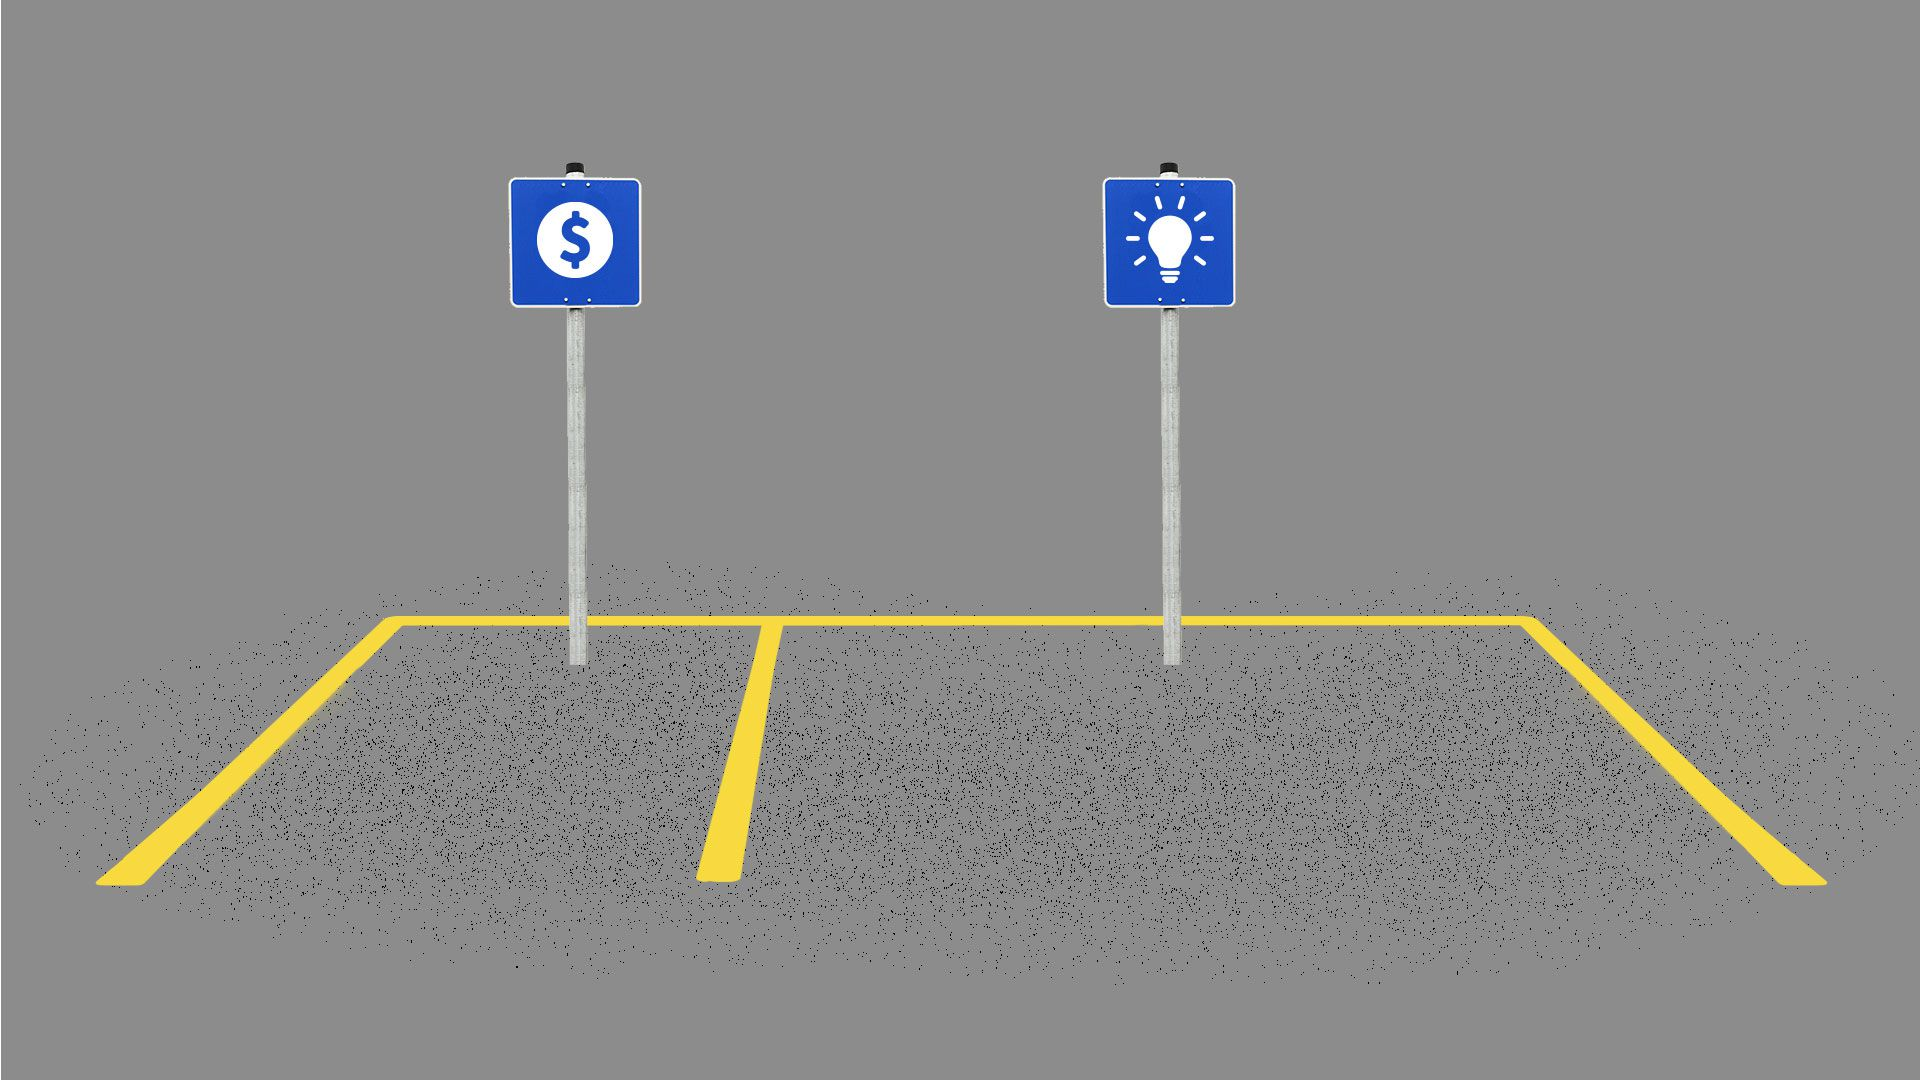 Illustration of two parking spaces, one marked for founders the other for investors. The founders spot is twice as large.